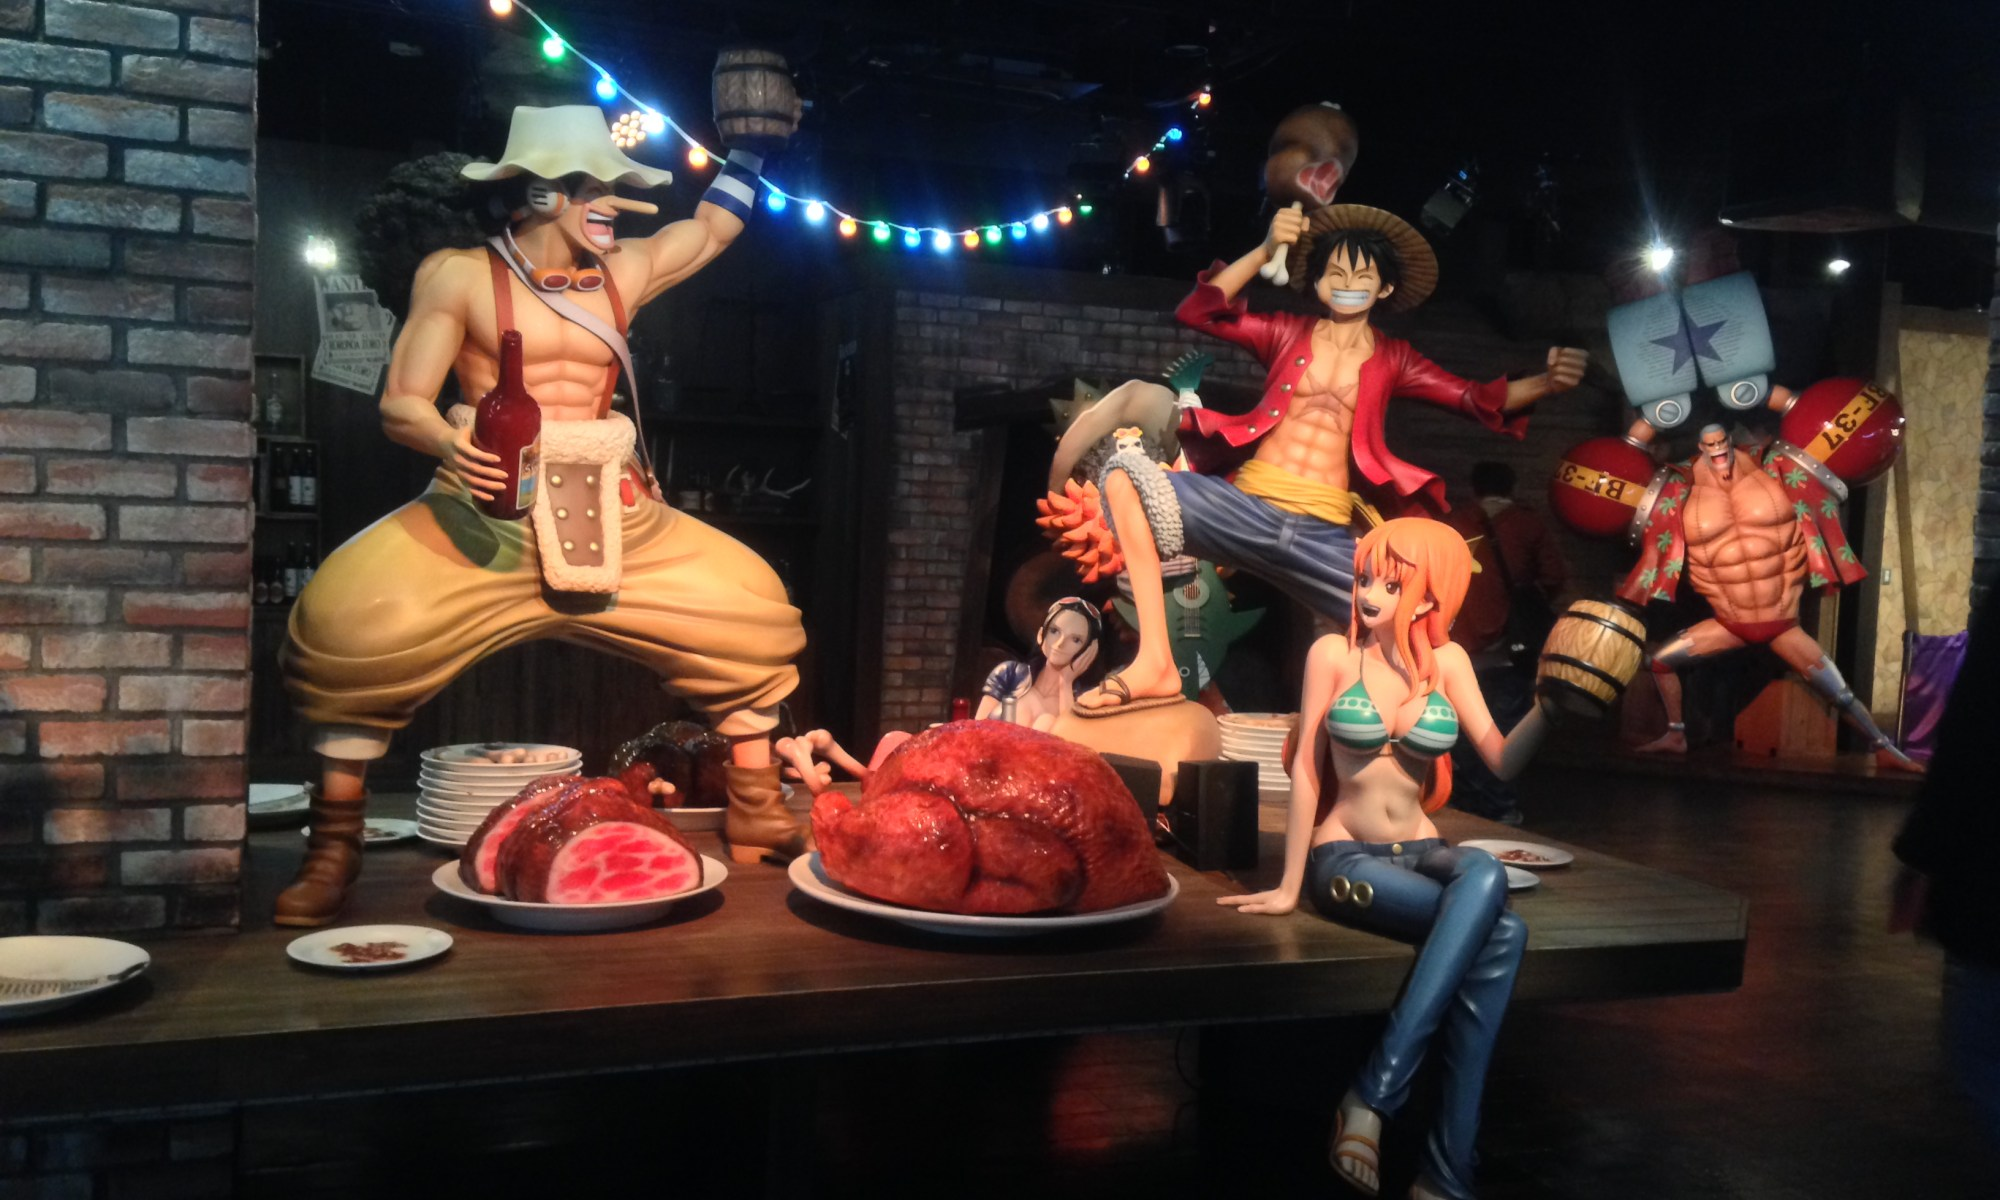 The Strawhats celebrating around a table with Nami sitting holding a beer mug, Luffy and Usopp dancing around and Robin sitting and looking at them fooling around